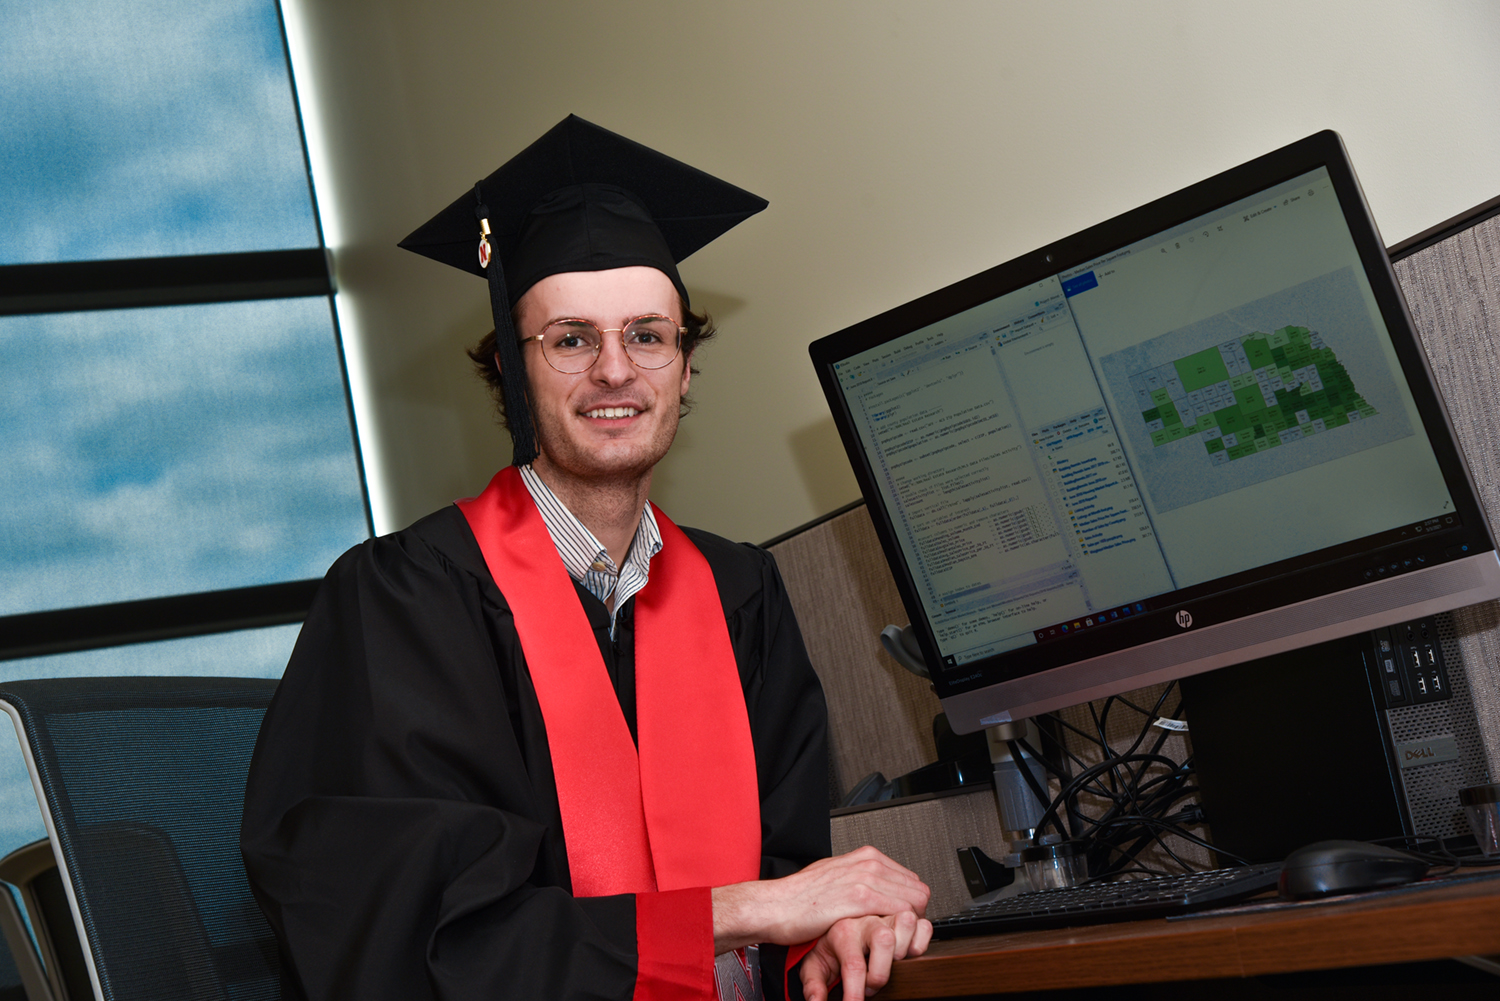 Schneider gained experience as a Bureau of Business Research Scholar for three years